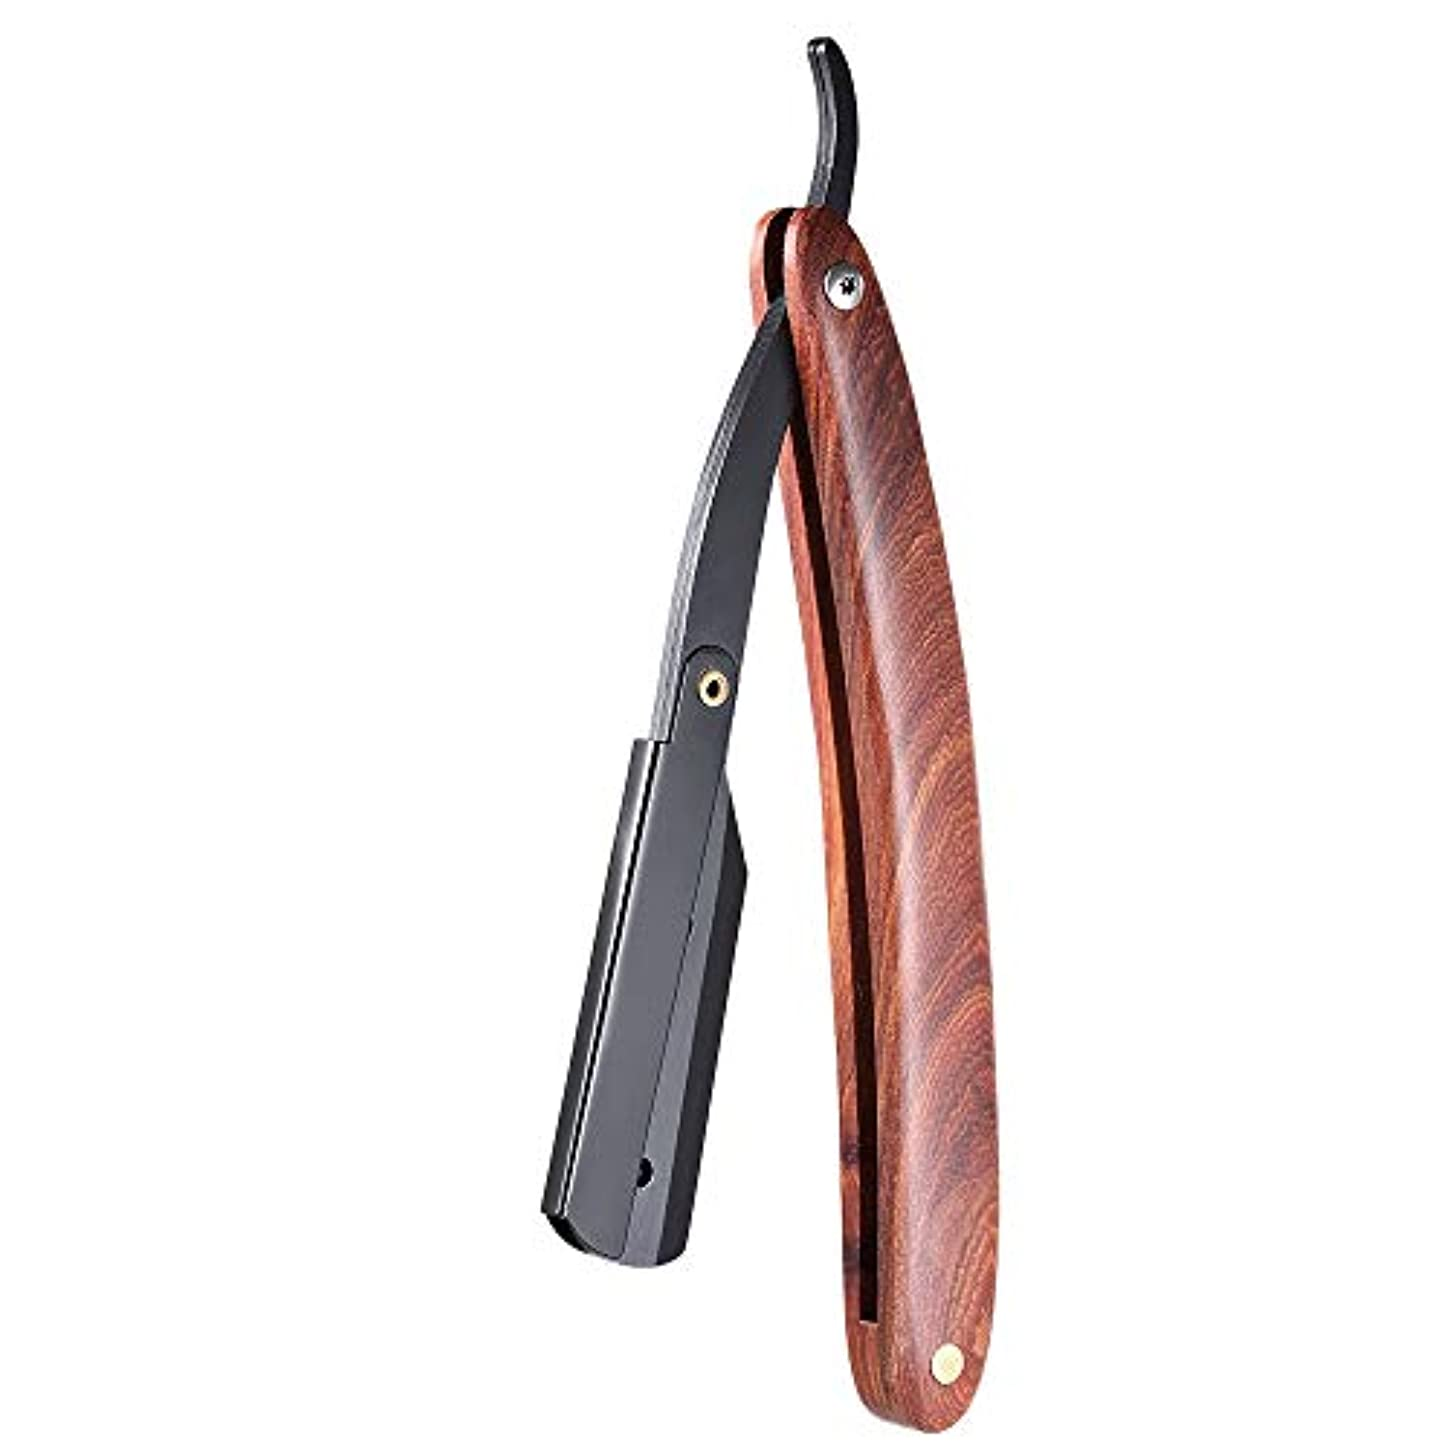 更新する脱臼するホラーMen Shaving Straight Edge Razor Stainless Steel Manual Razor Wooden Handle Folding Shaving Knife Shave Beard Cutter Pouch